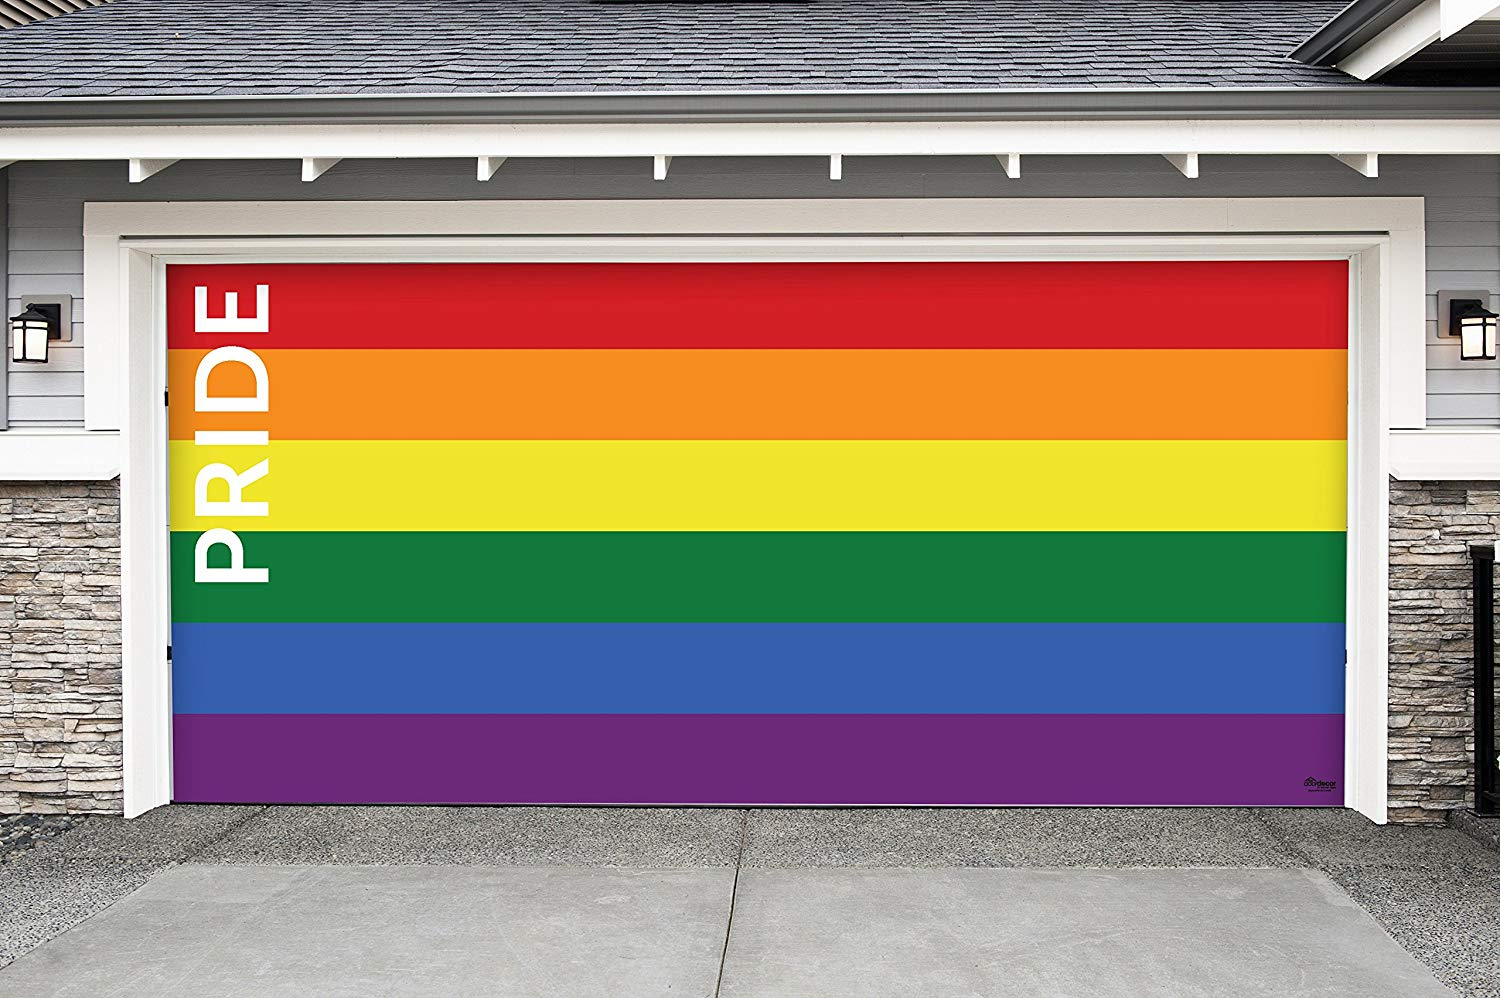 Victory Corps Pride Text - Outdoor Pride LGBT Garage Door Banner Mural Sign Décor 7'x 16' Car Garage - The Original Holiday Garage Door Banner Decor